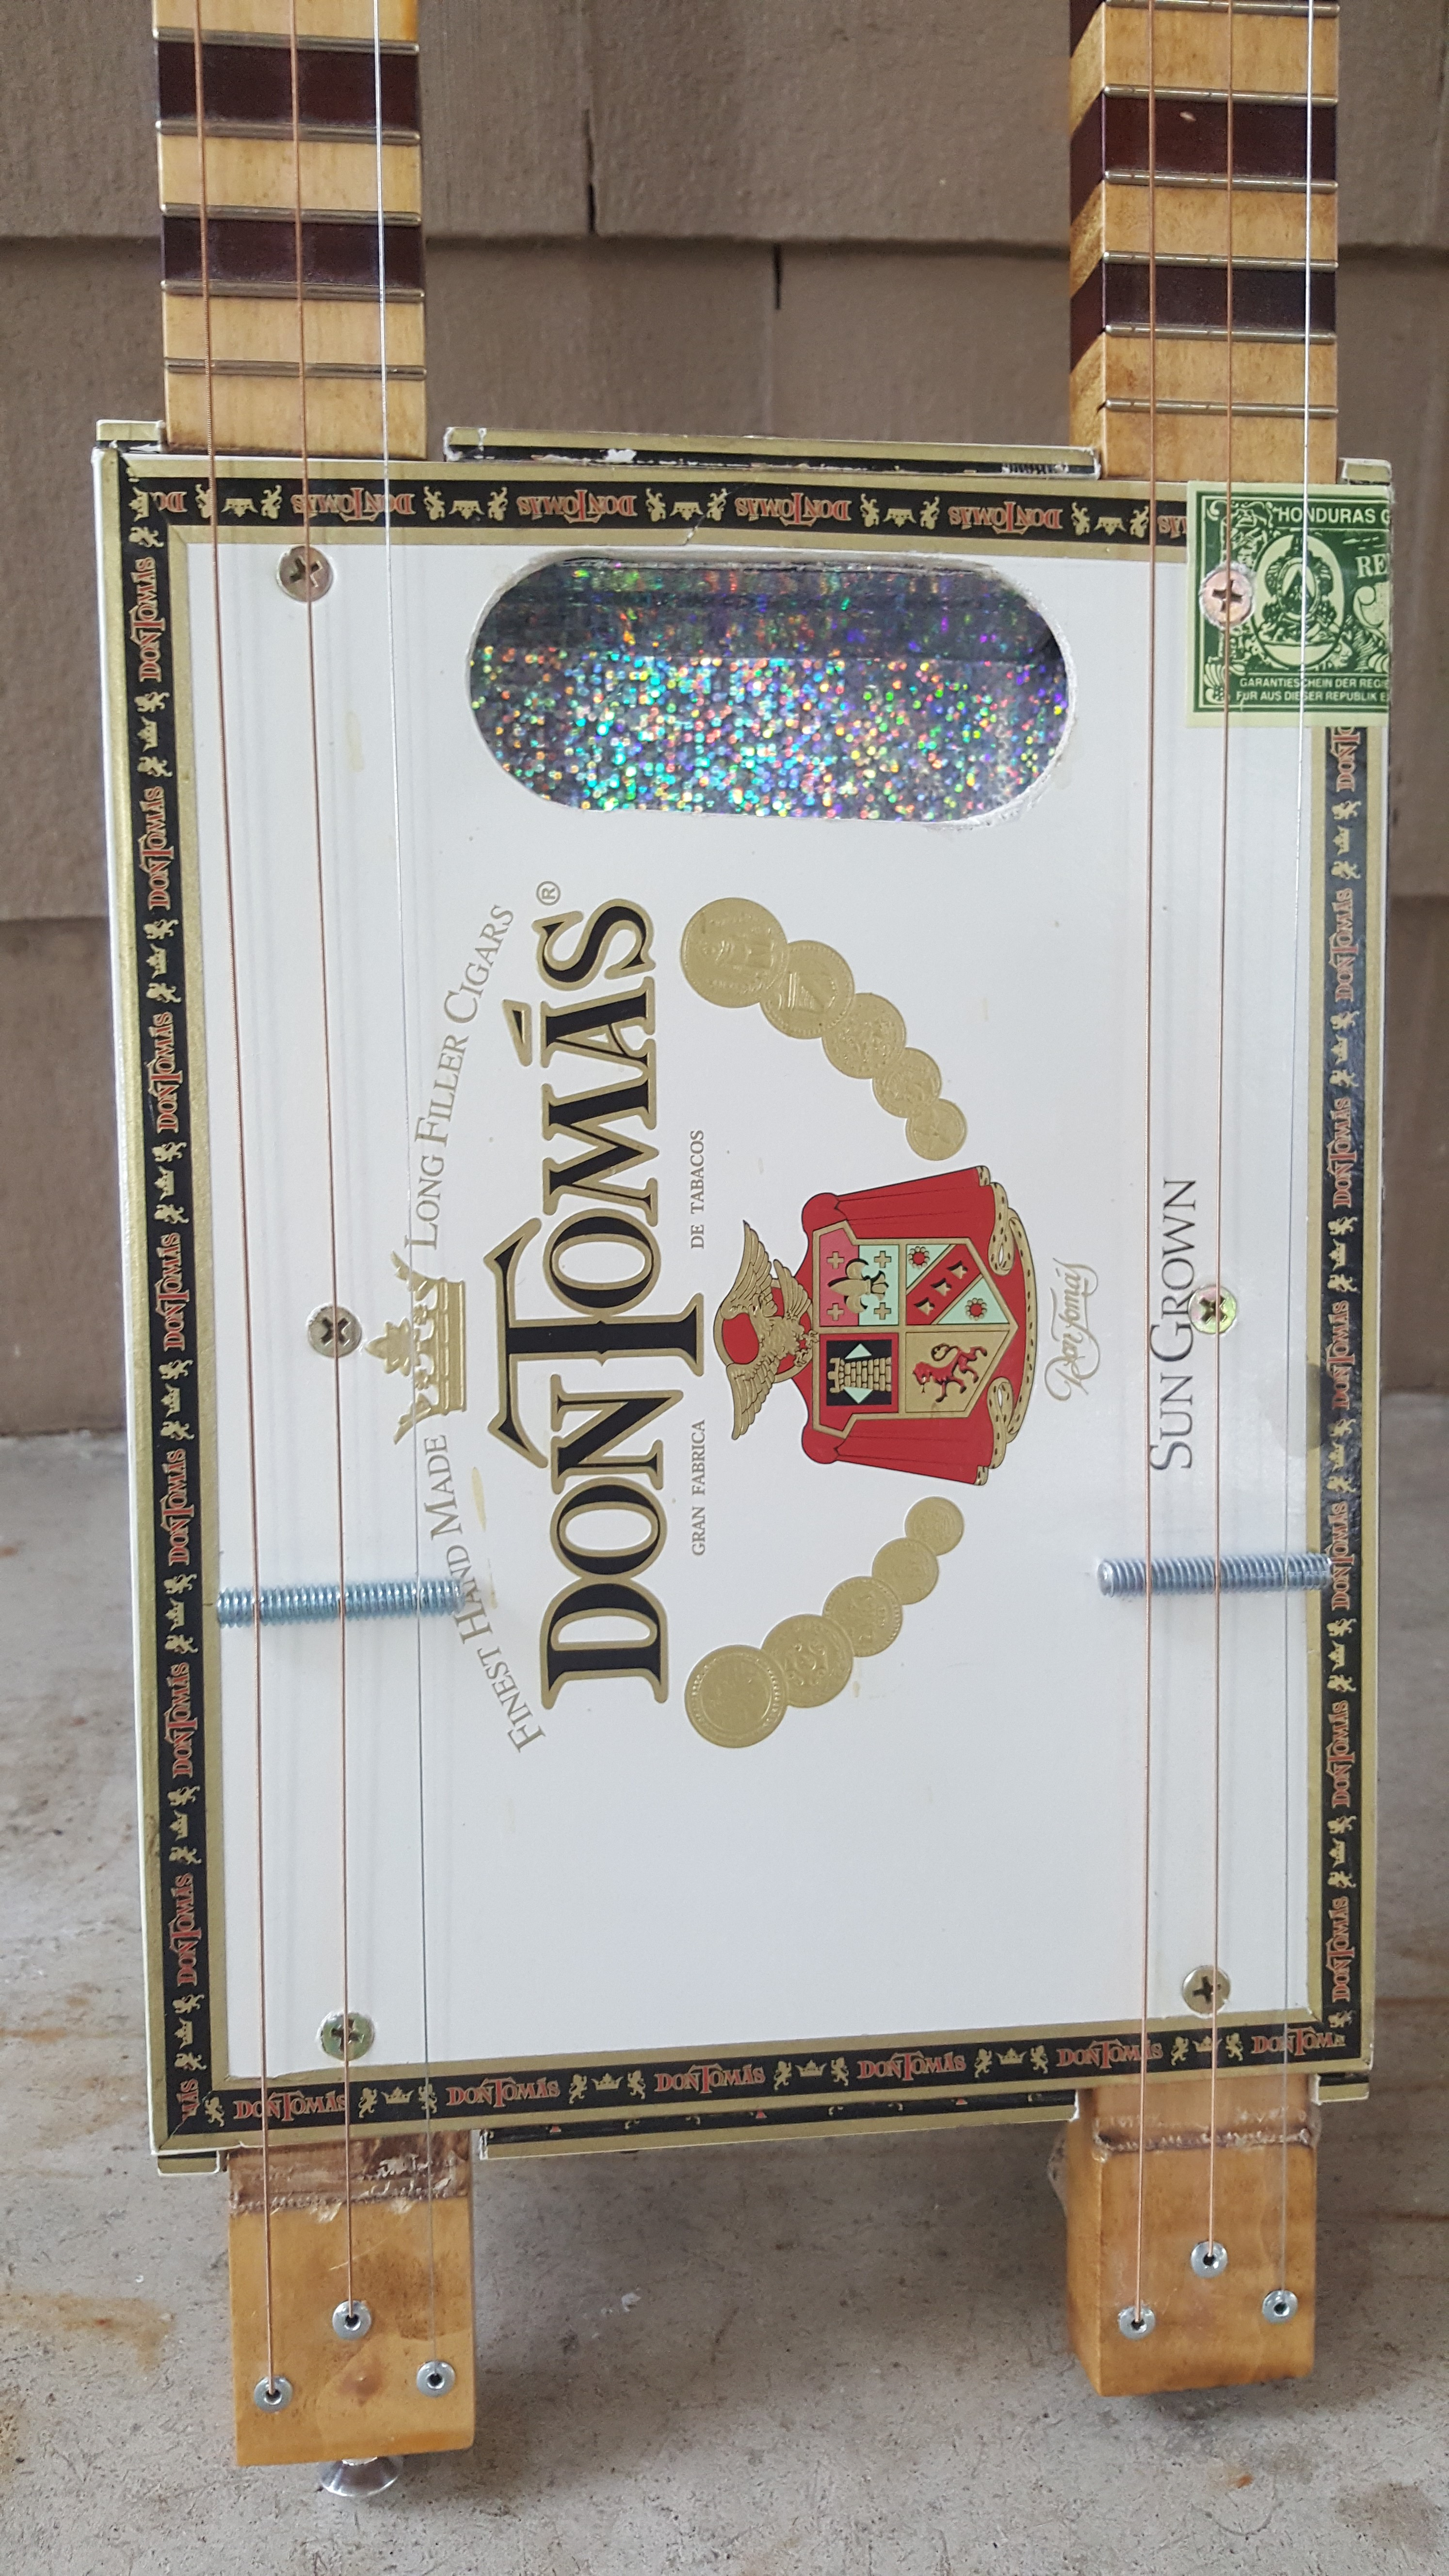 For Sale – Double Neck 3 String Cigar Box Guitar | News